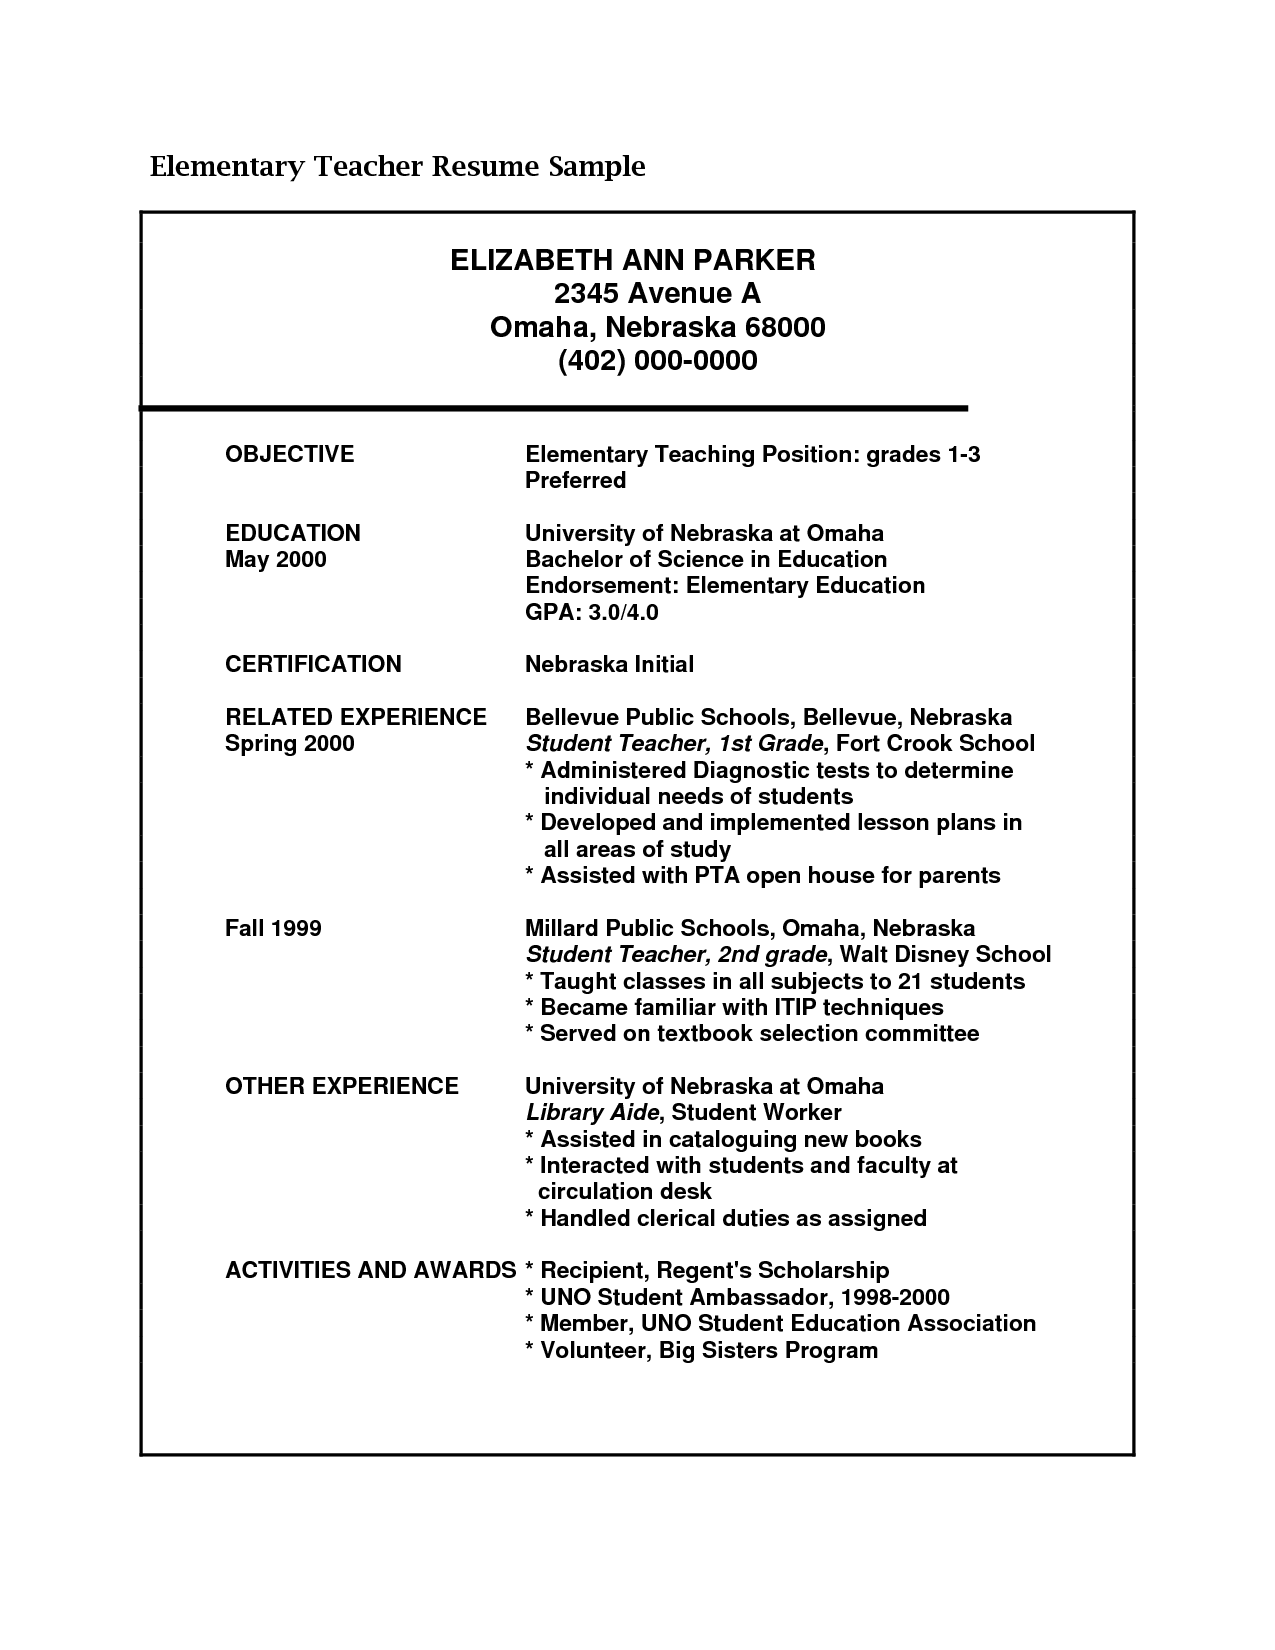 admin teacher resume exampleselementary teacher resume exampleshigh school teacher resume - Samples Of Objective For Resume